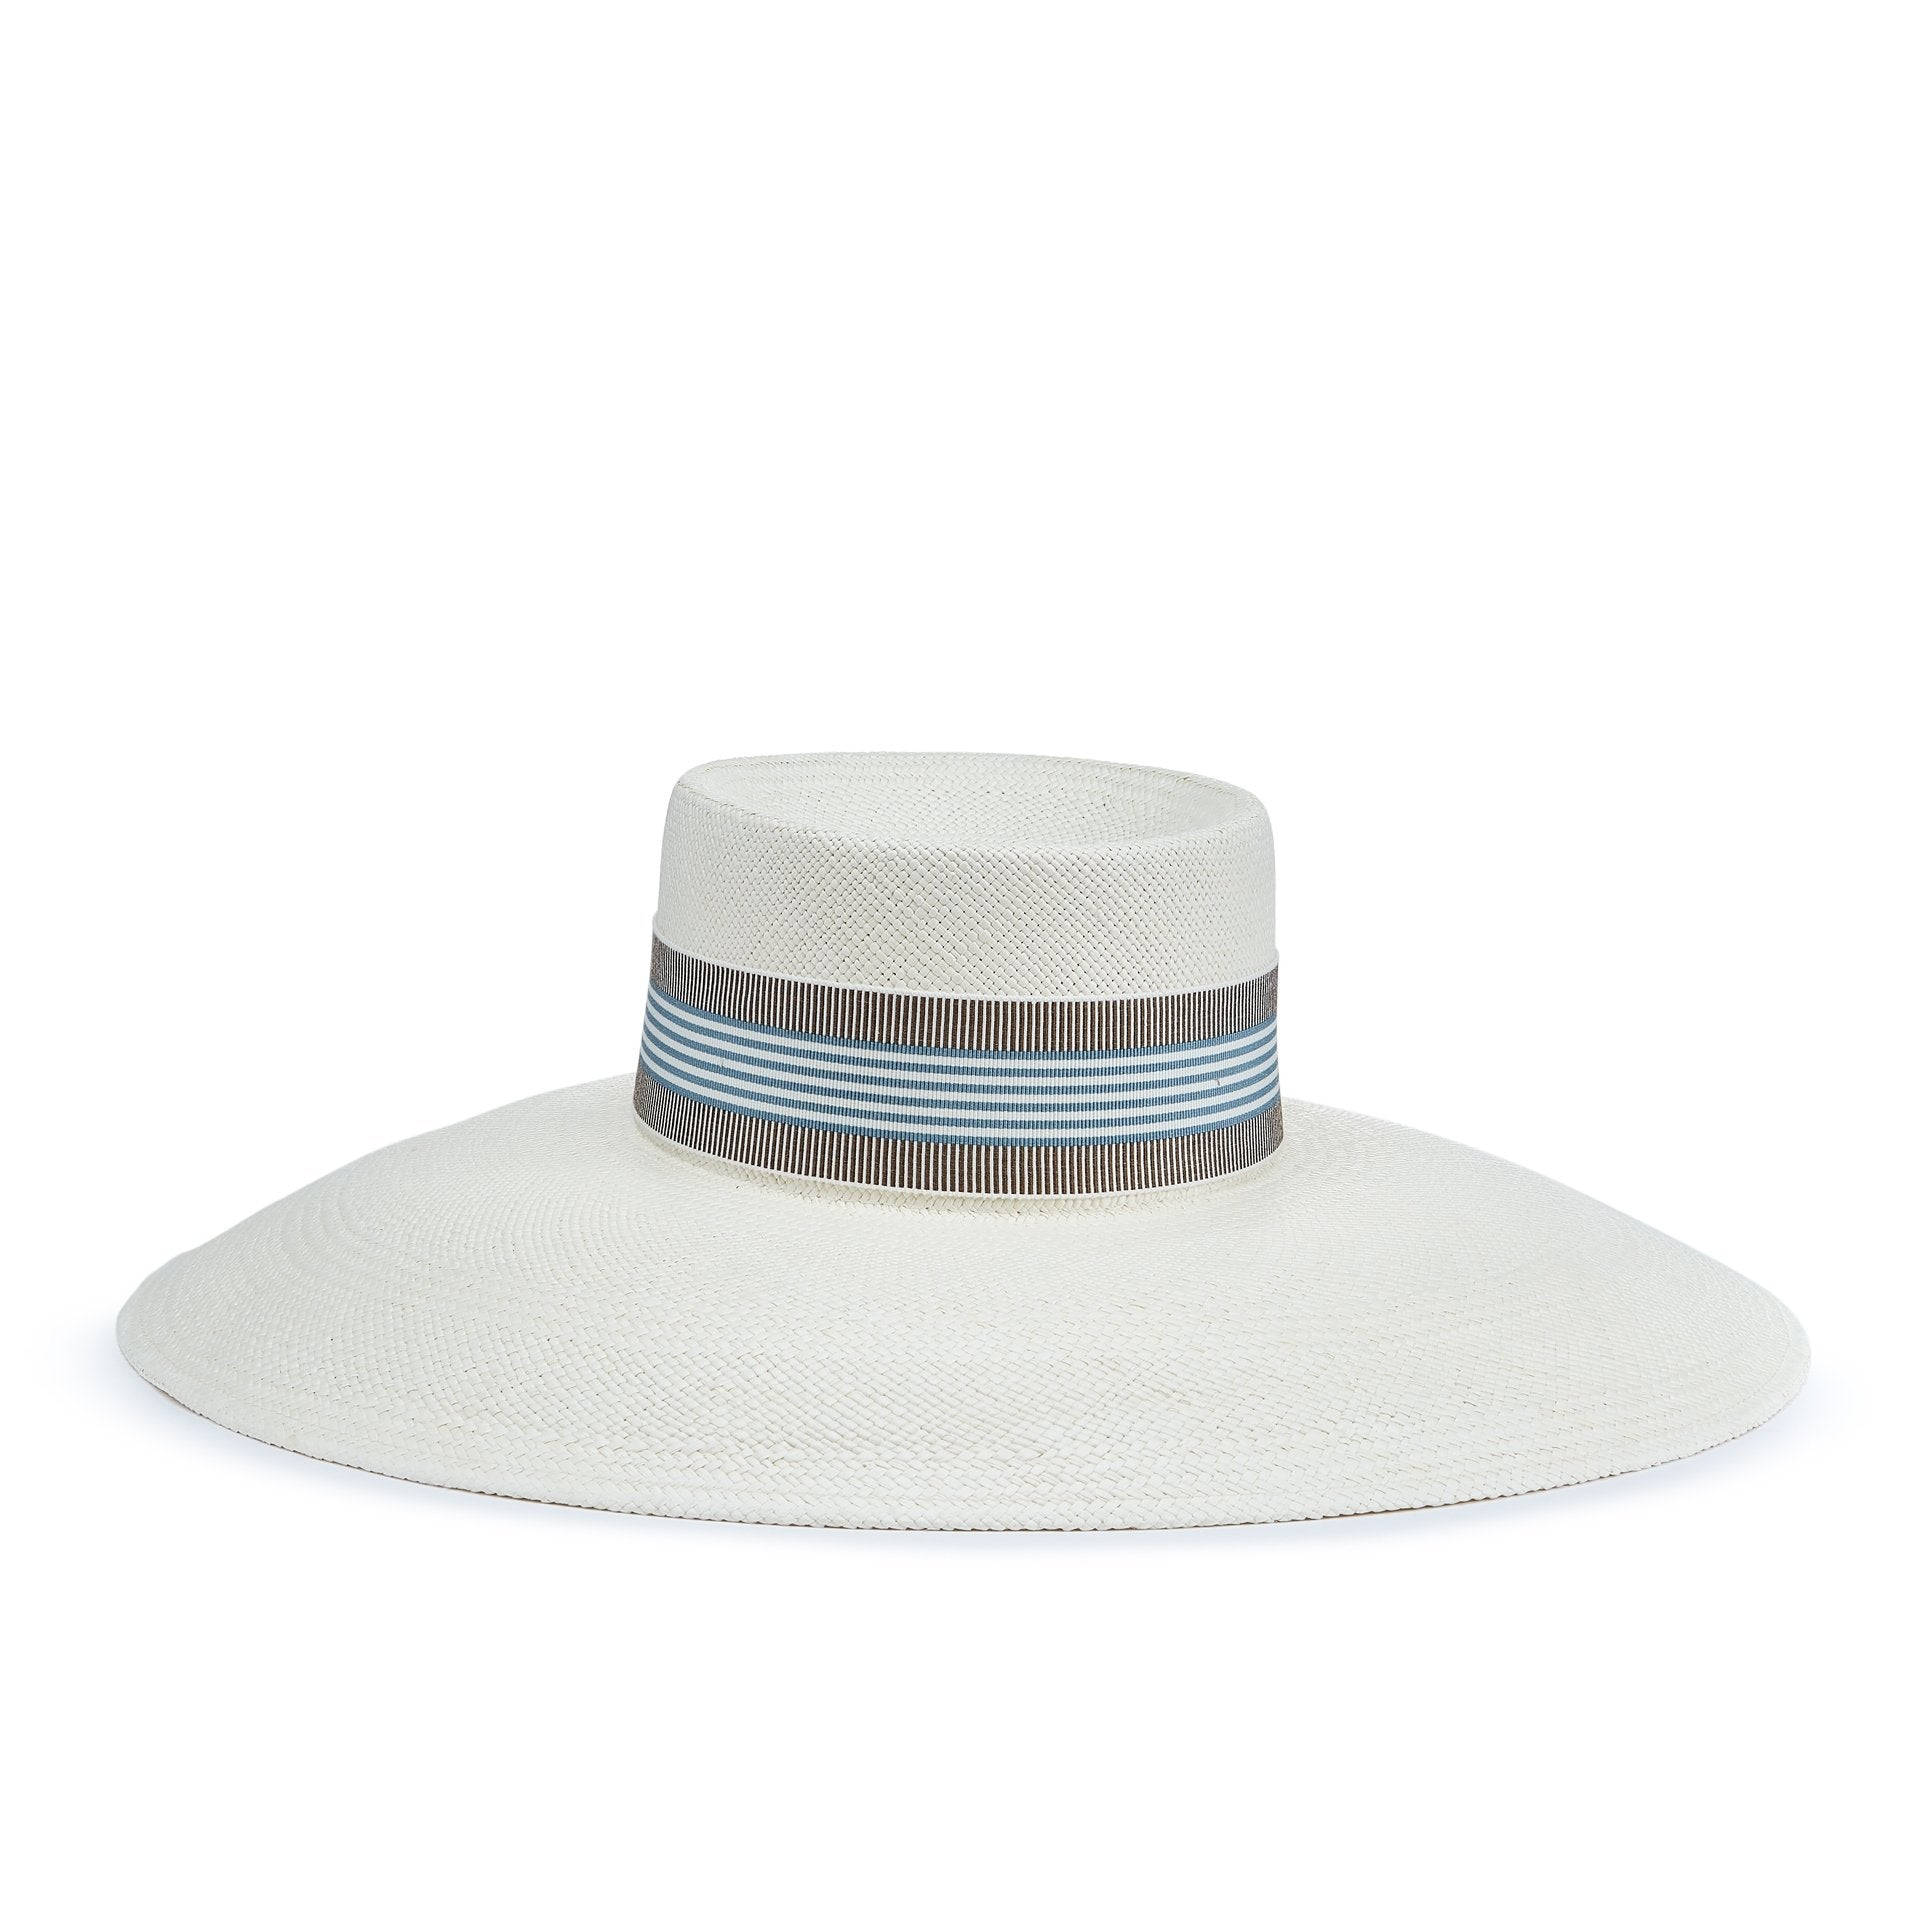 Thebes wide brim Panama - Women's hats - Lock & Co. Hatters London UK